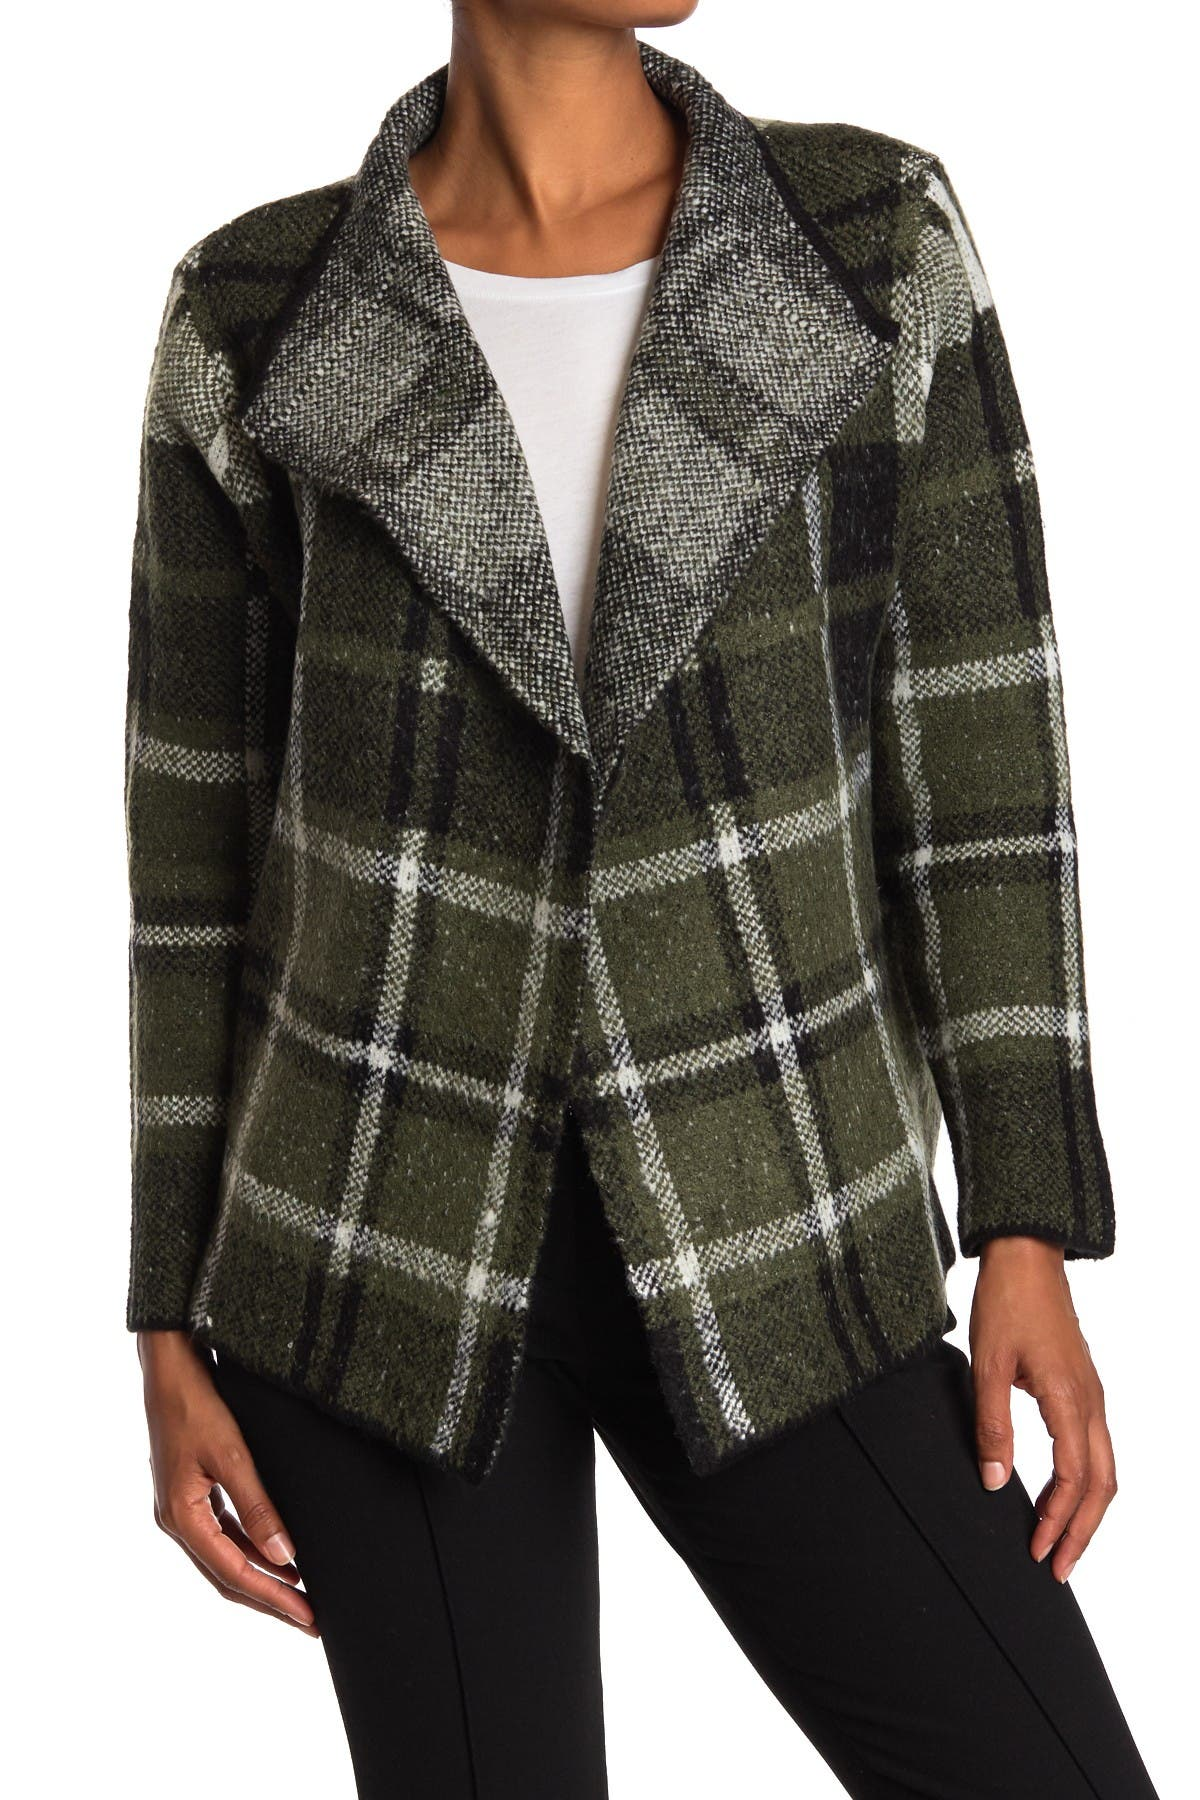 Image of JOSEPH A Plaid Open Front Cardigan Sweater Jacket